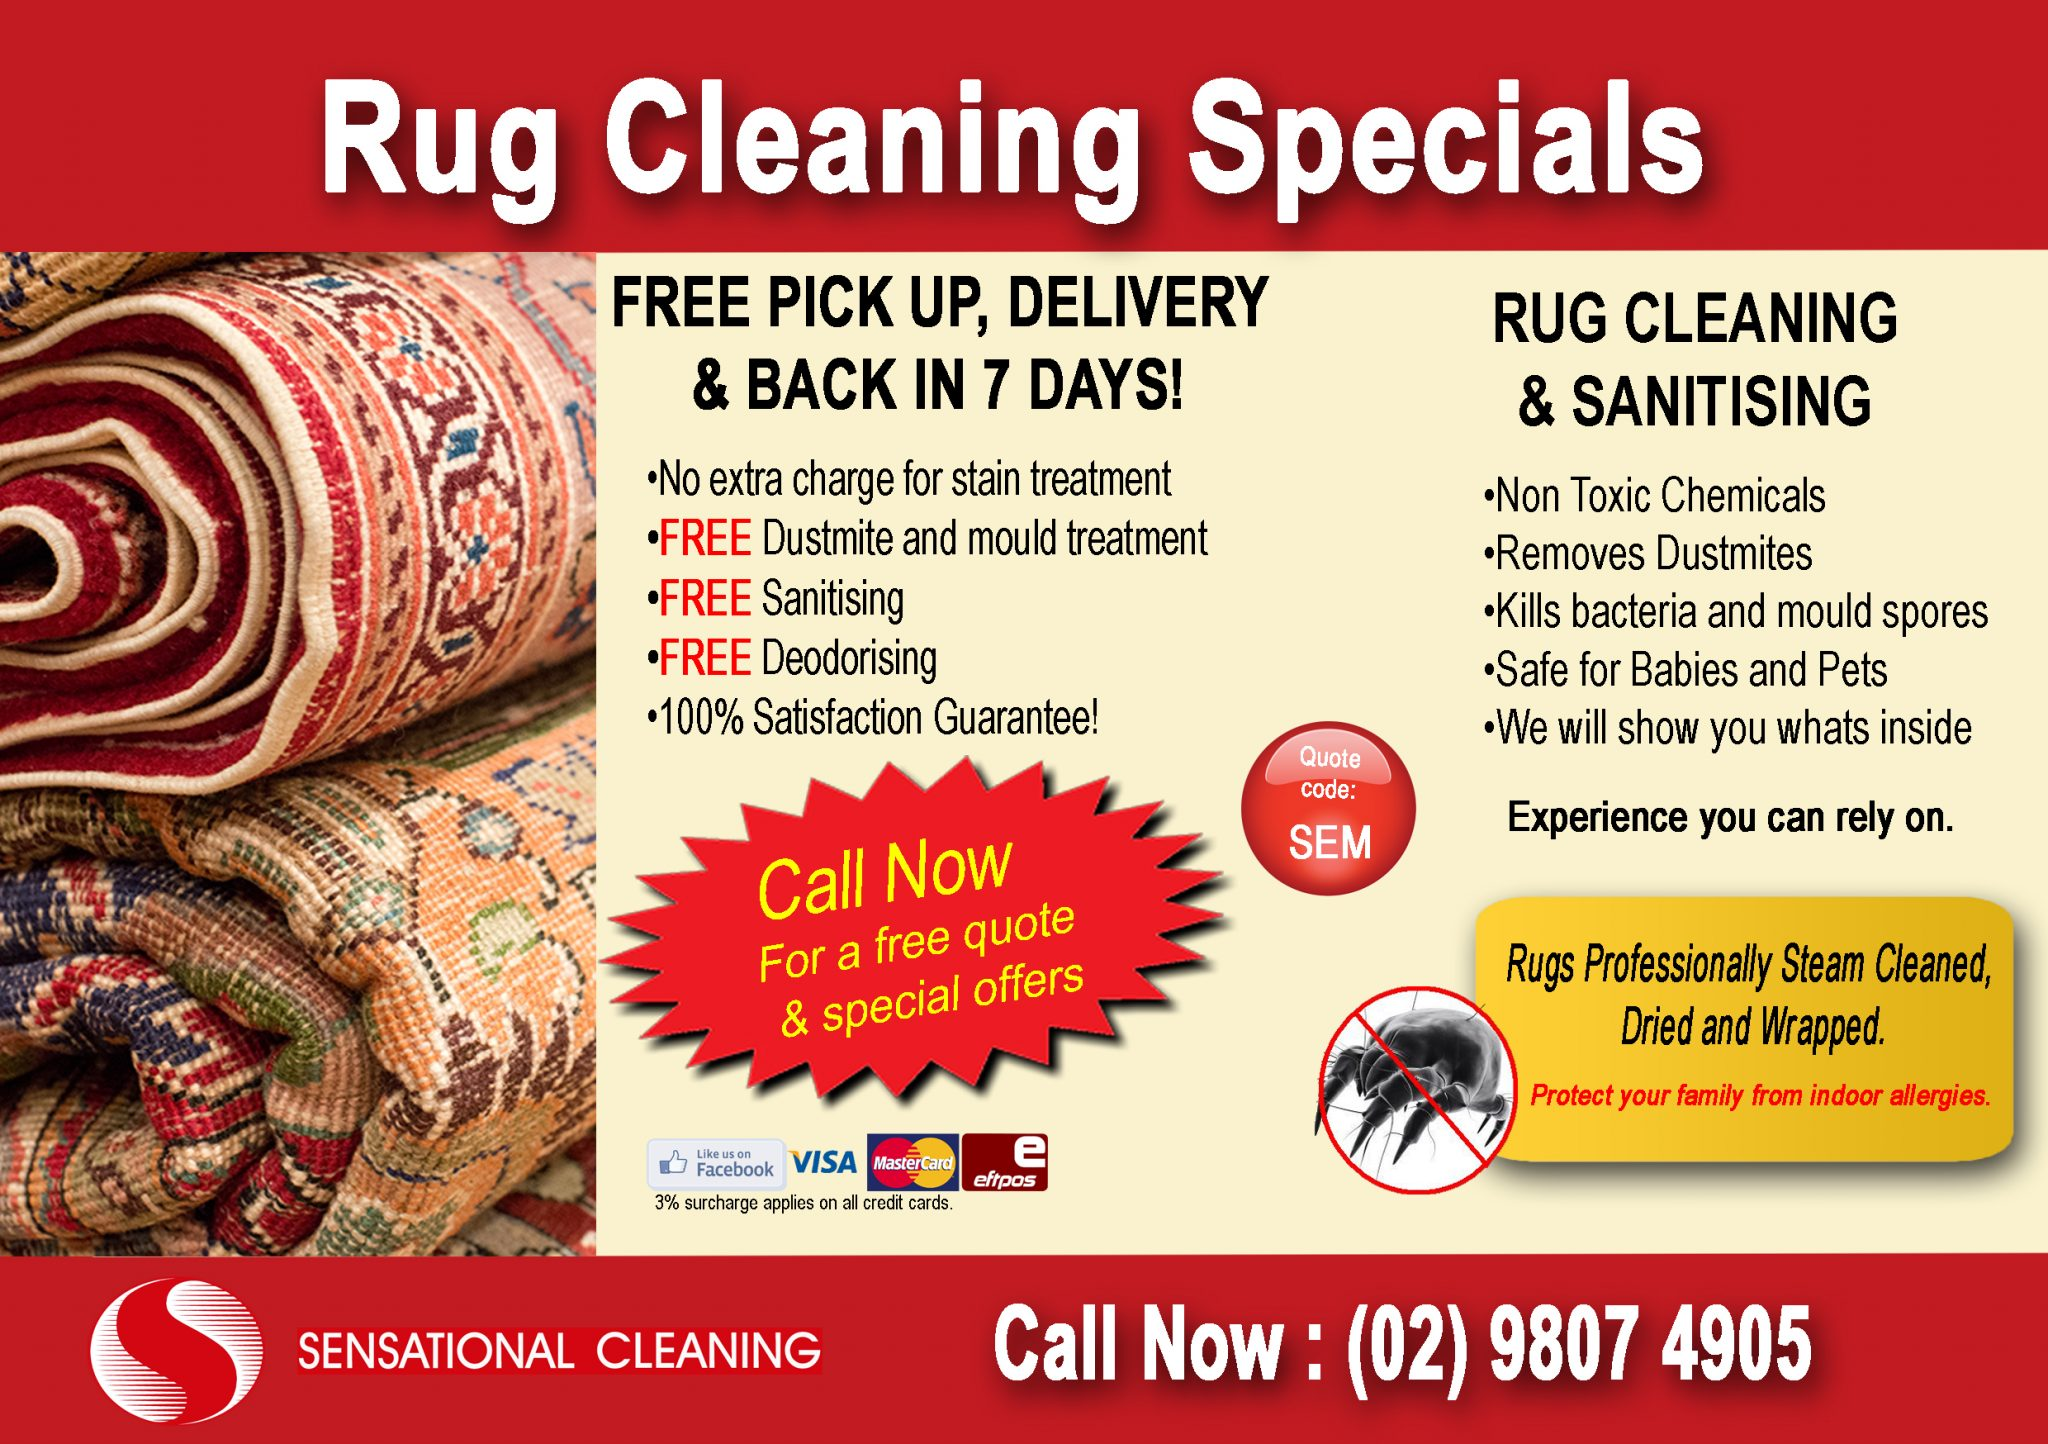 Rug Cleaning Sydney Cleaning Services Best Option For